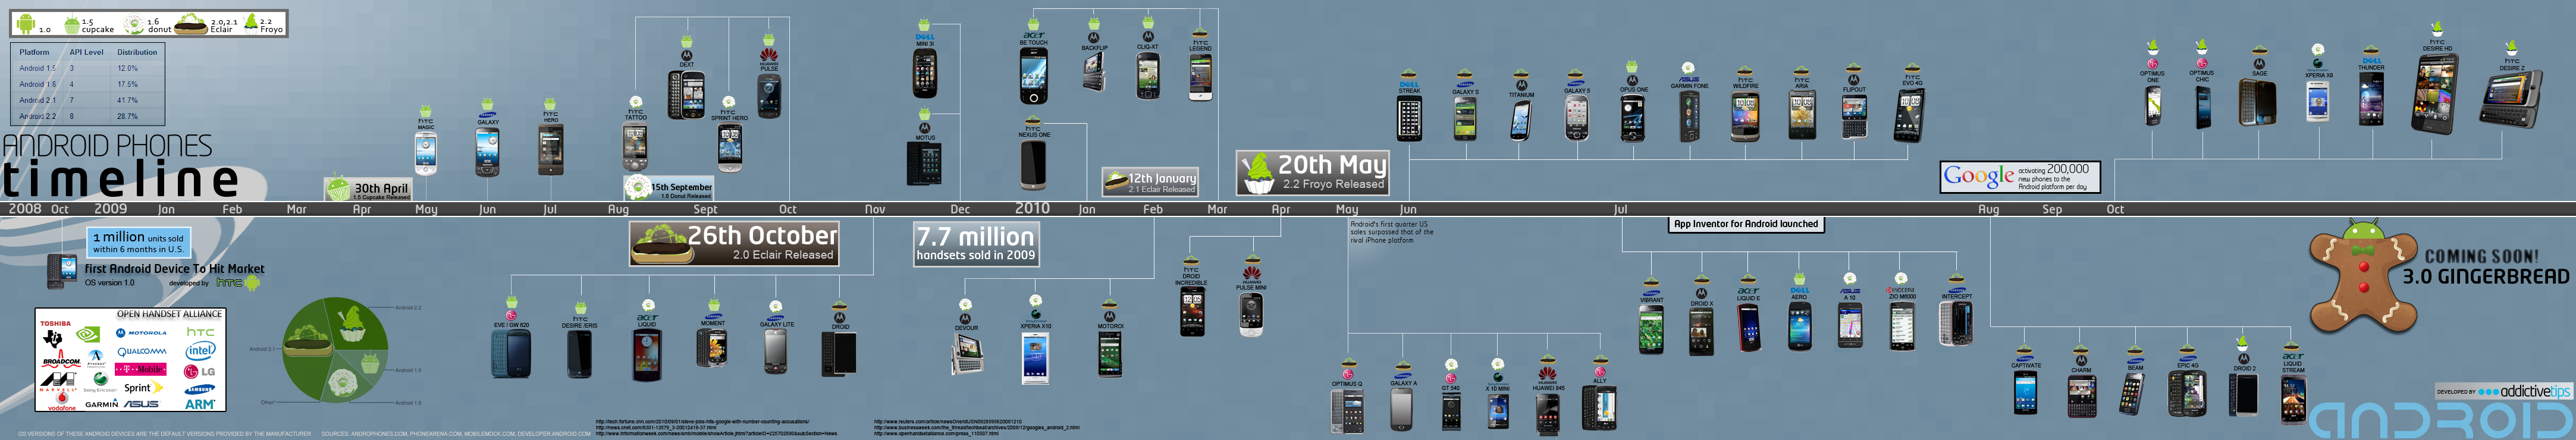 android-phones-timeline